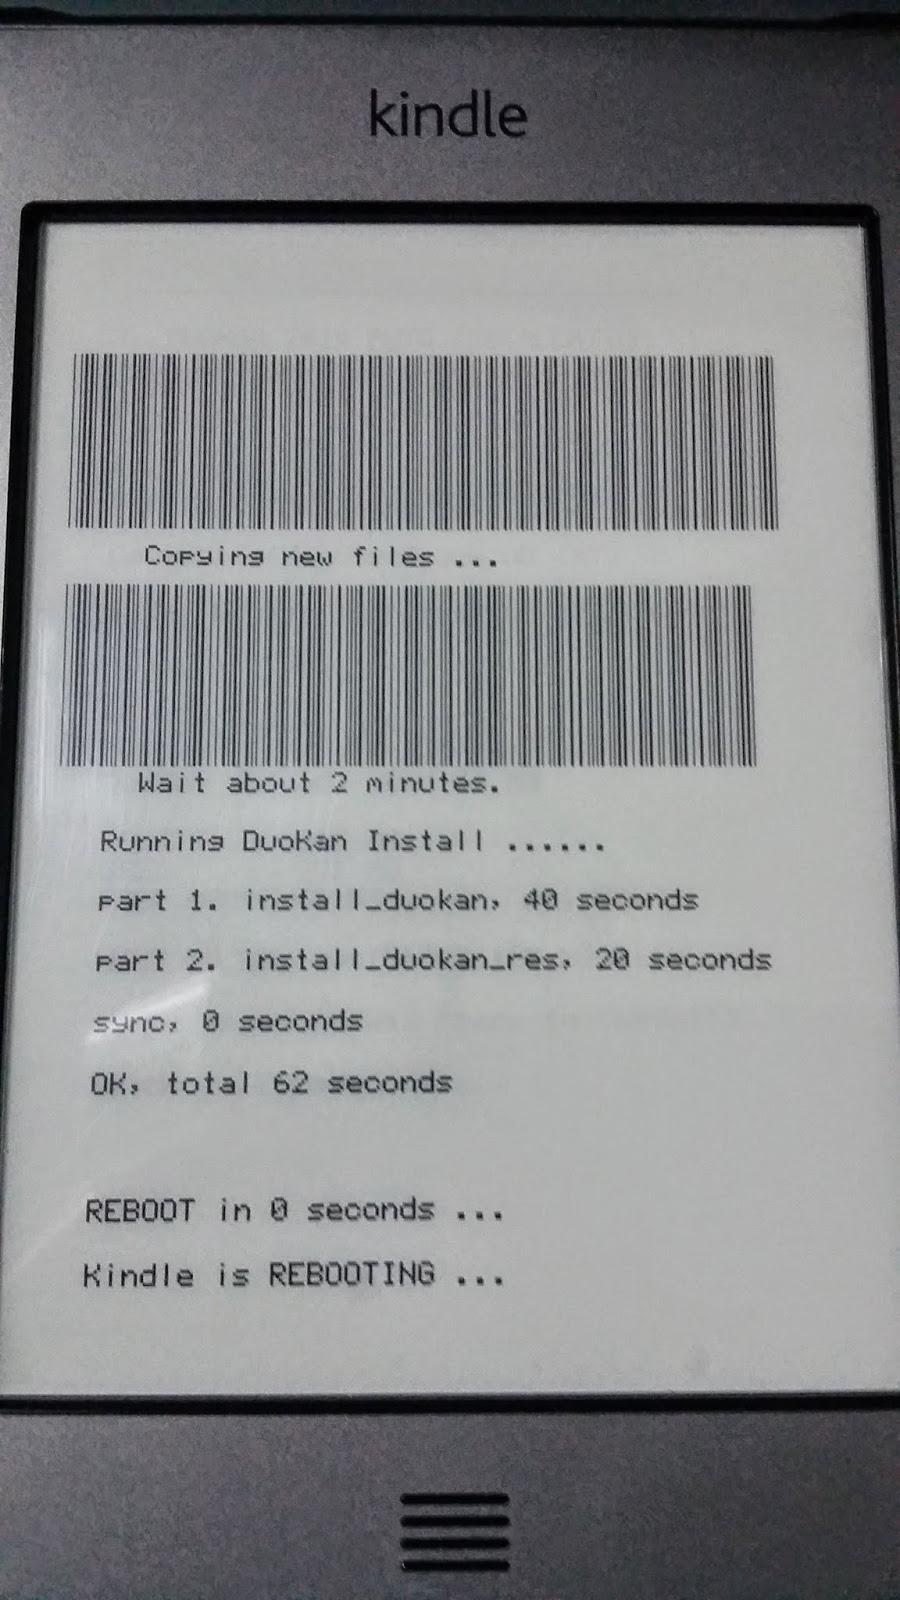 How to reboot kindle touch